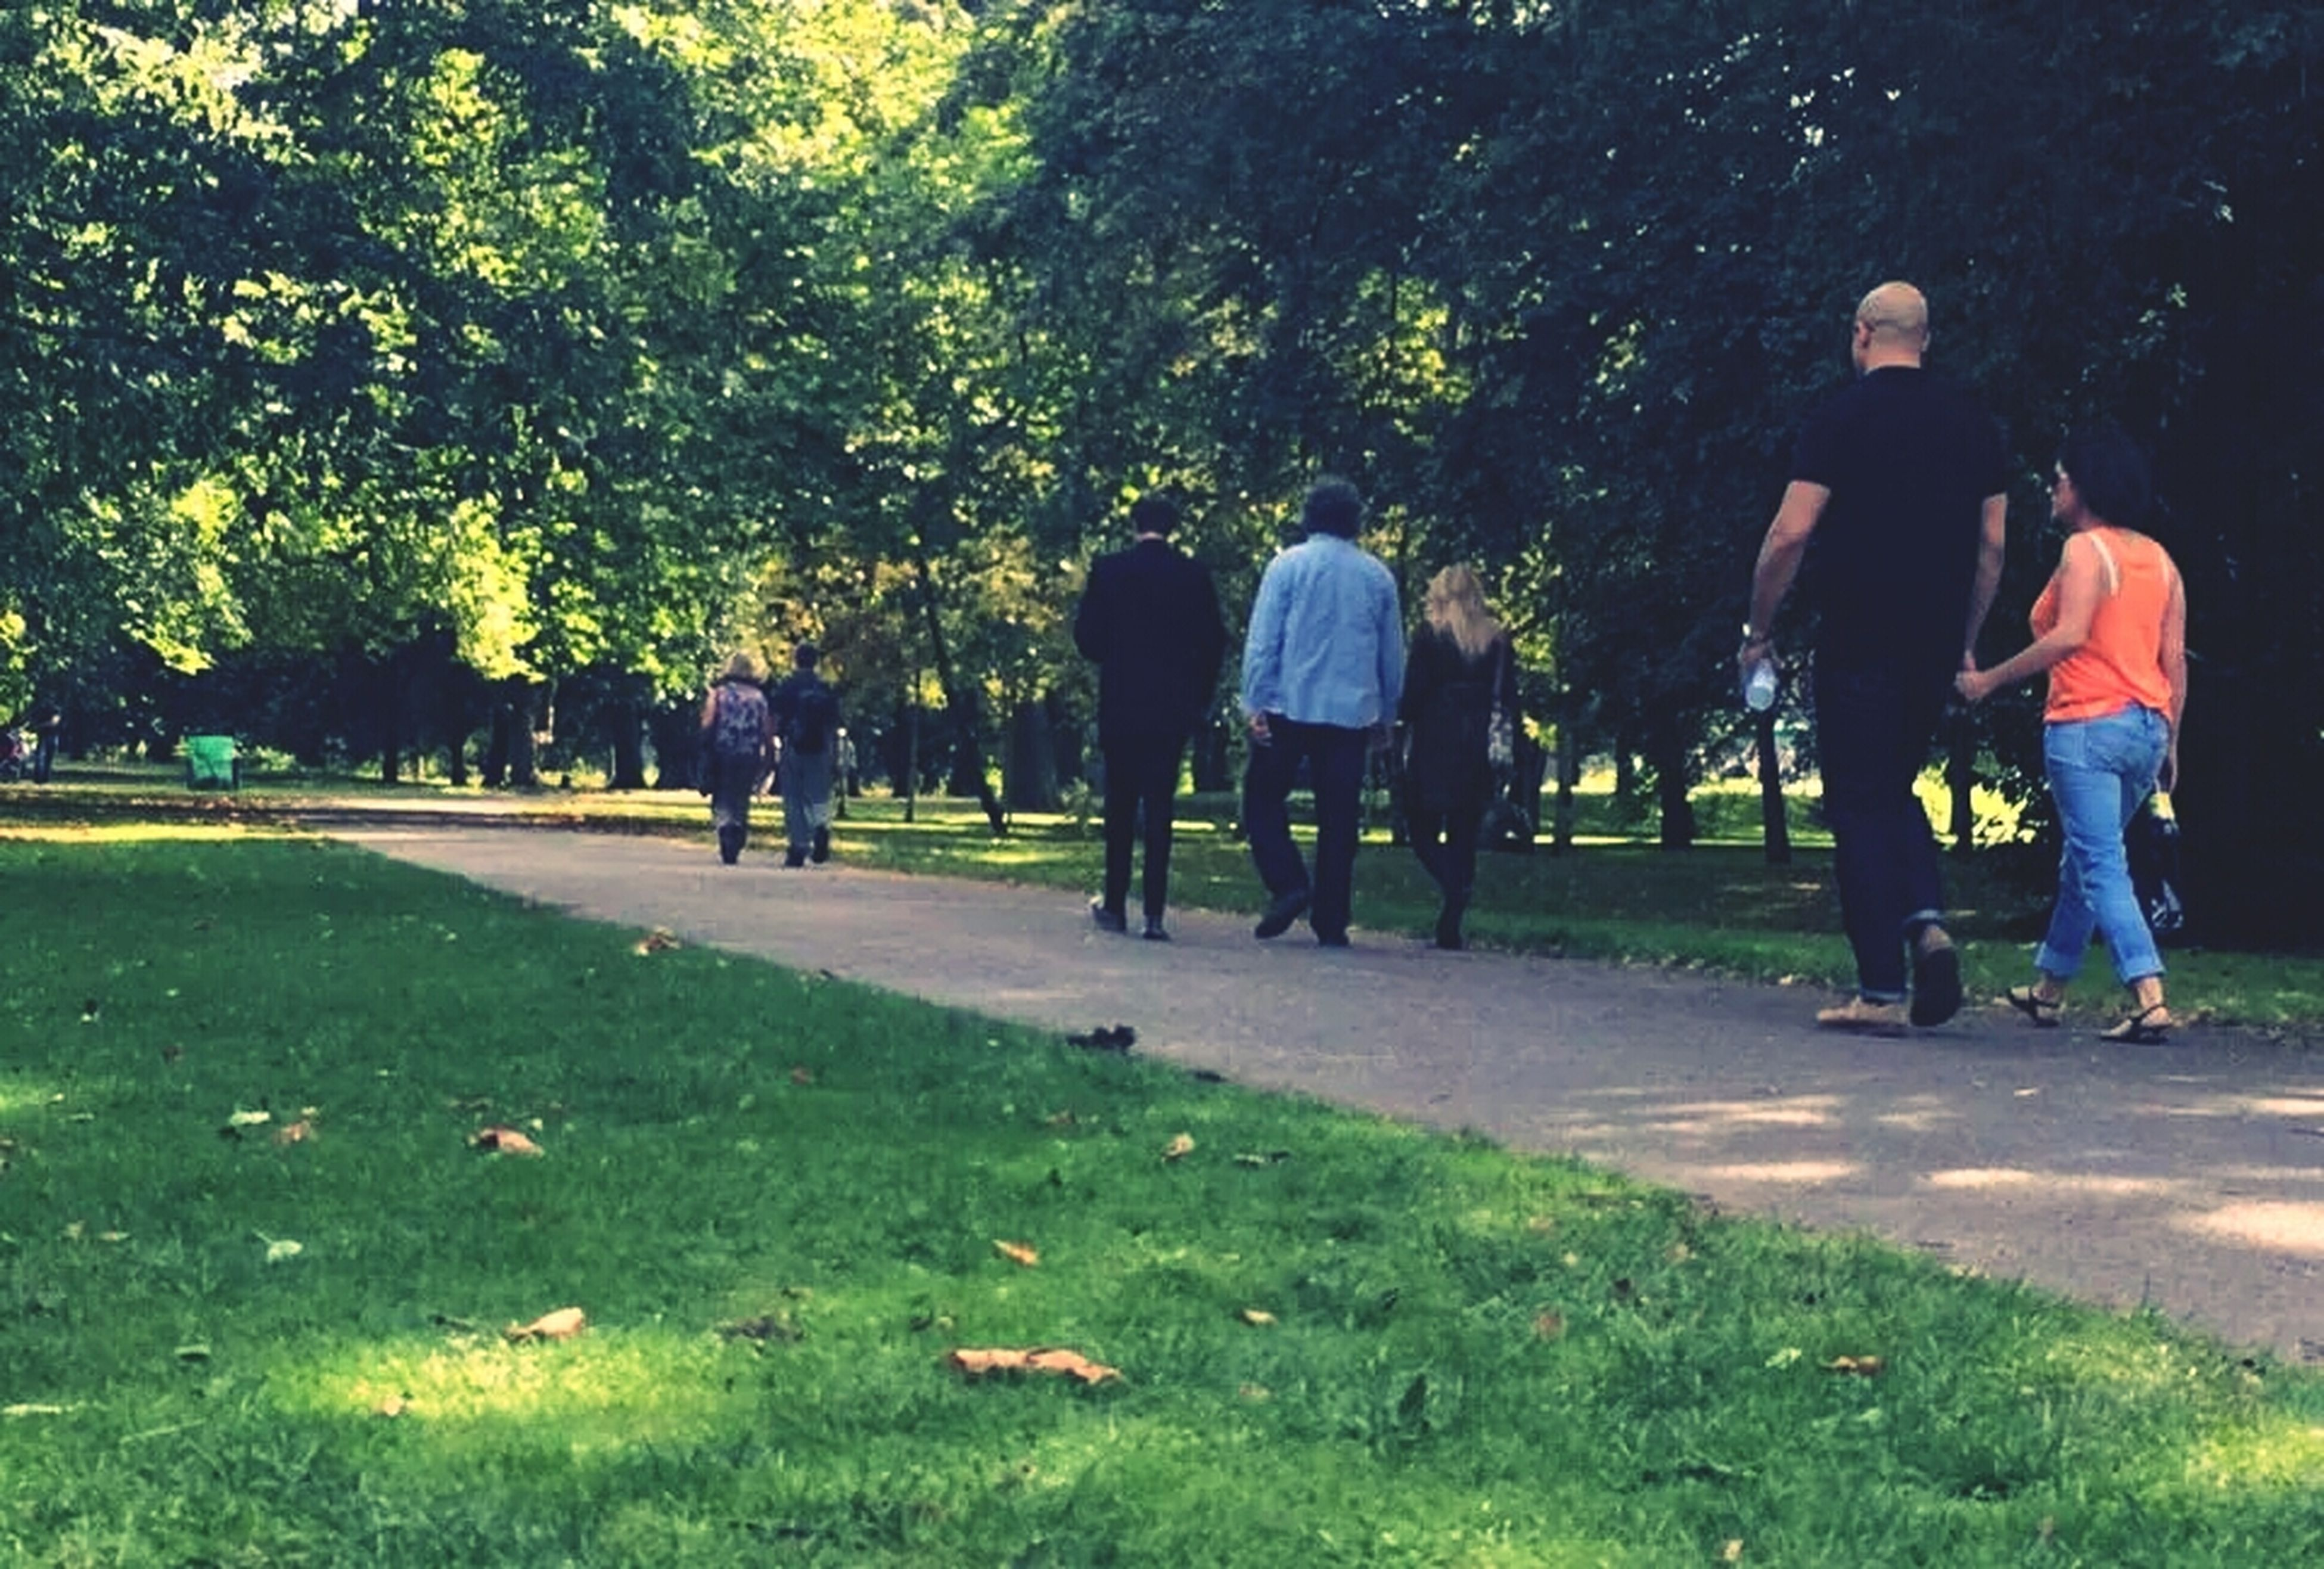 grass, men, lifestyles, leisure activity, walking, tree, rear view, person, full length, togetherness, park - man made space, casual clothing, green color, standing, bonding, park, day, nature